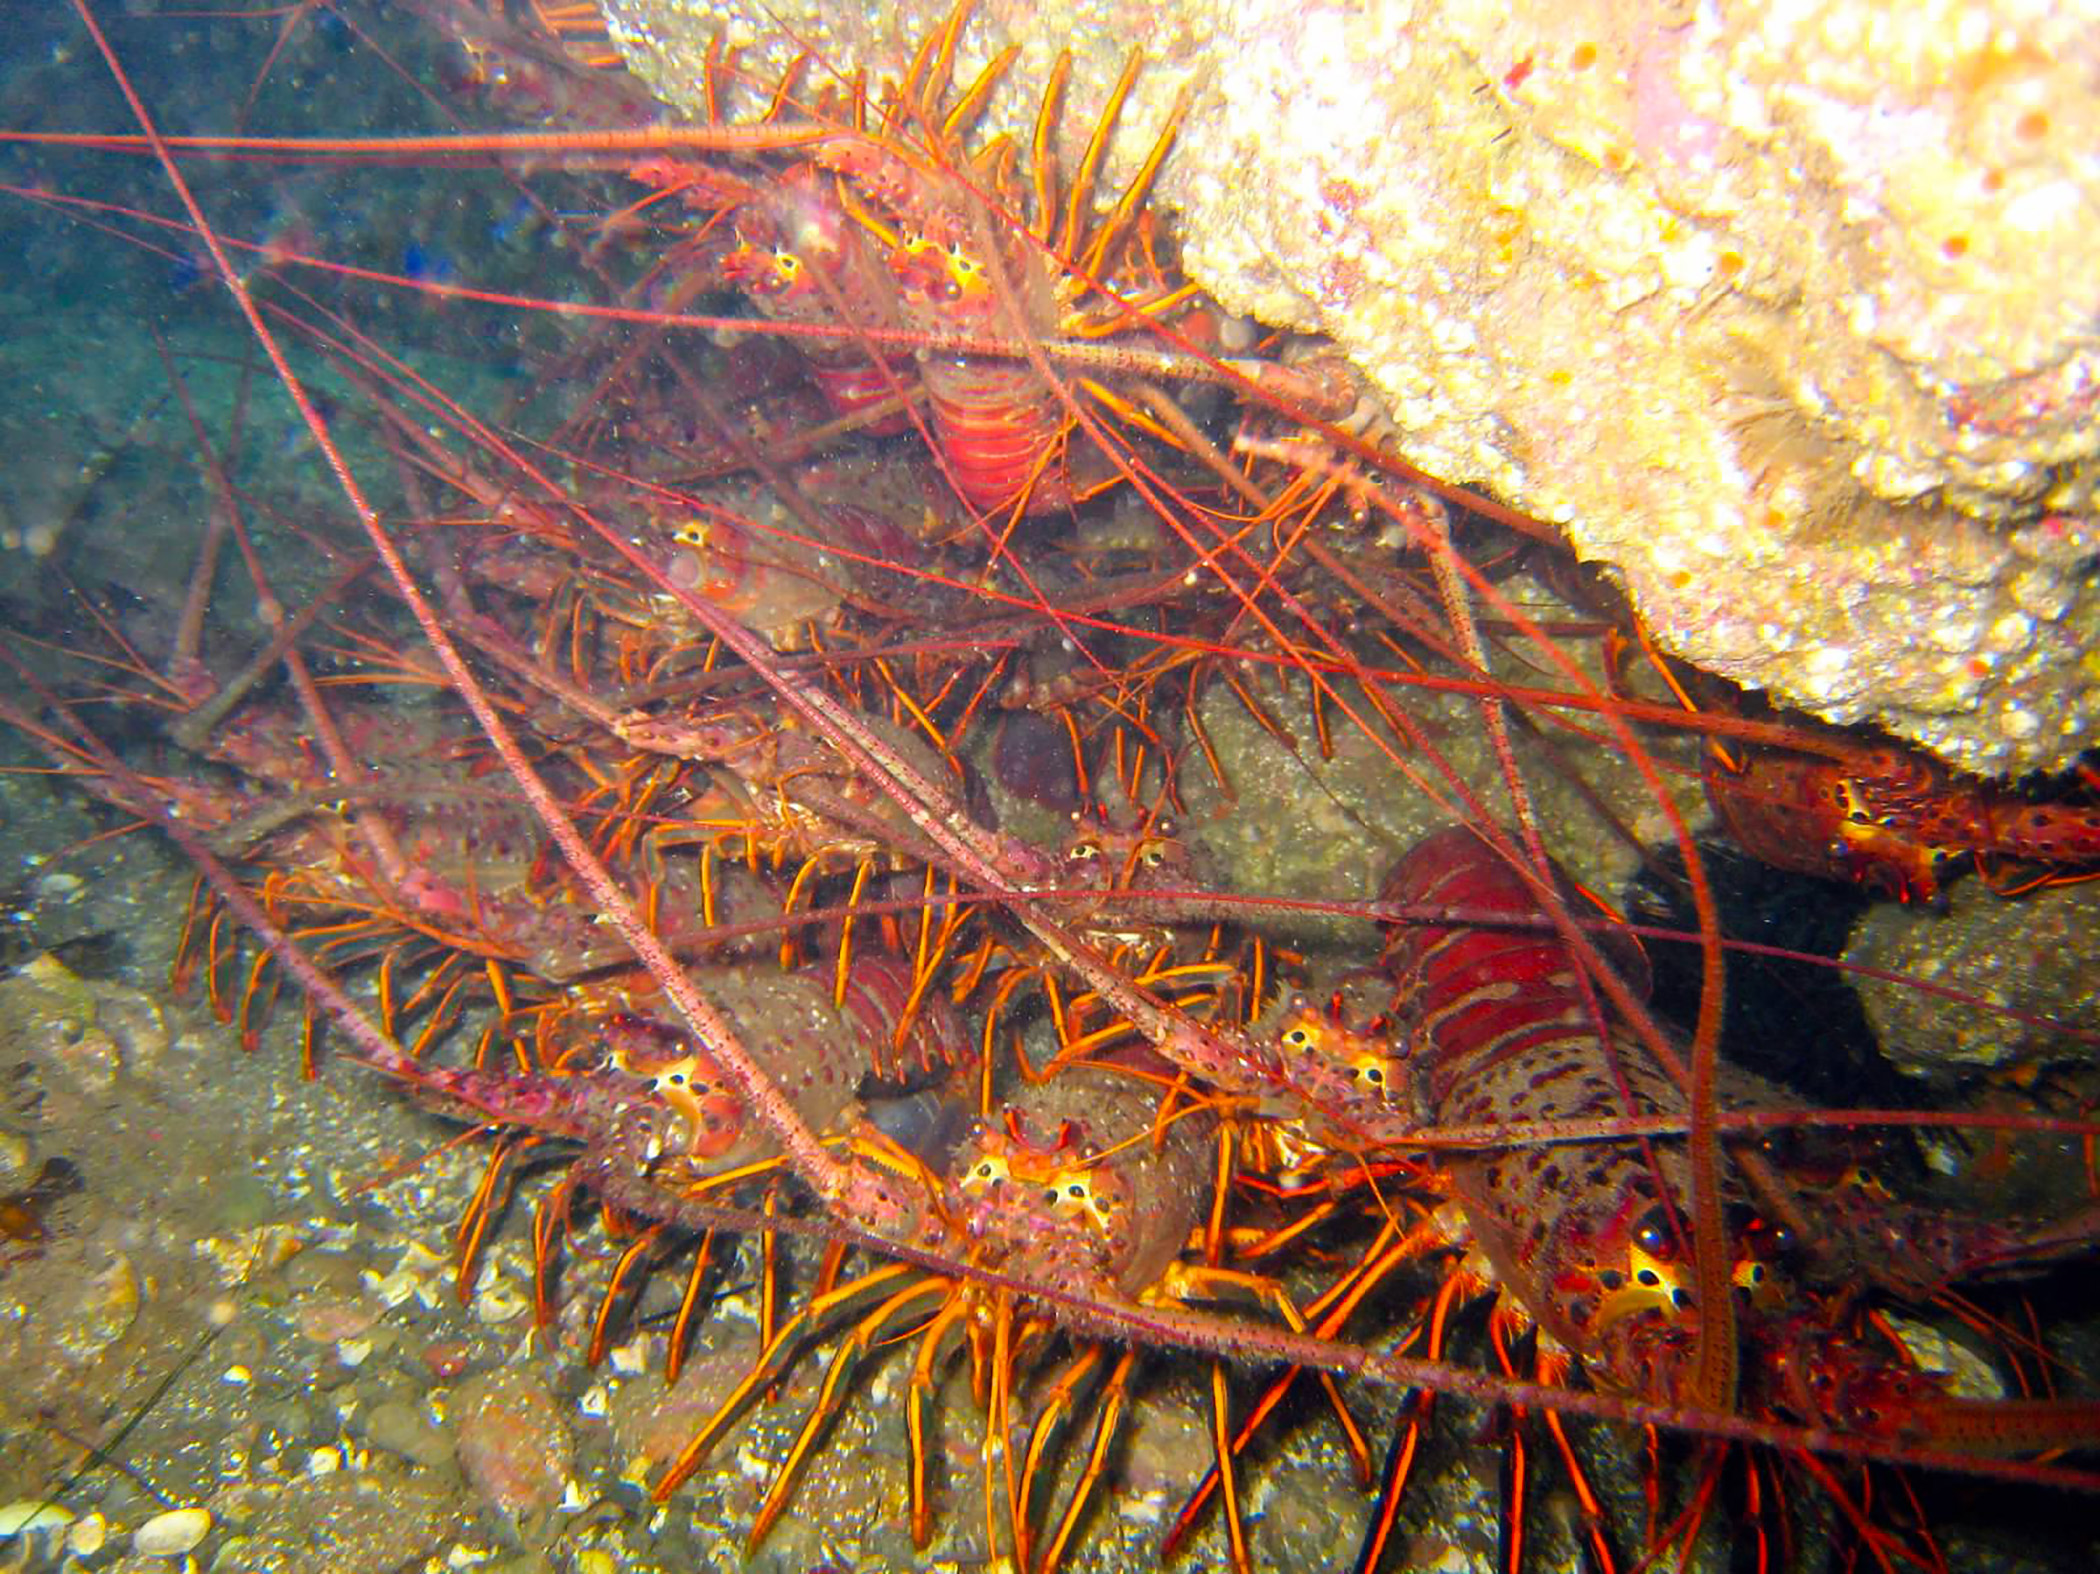 Lobsters california outdoors q and a for Lobster fishing california